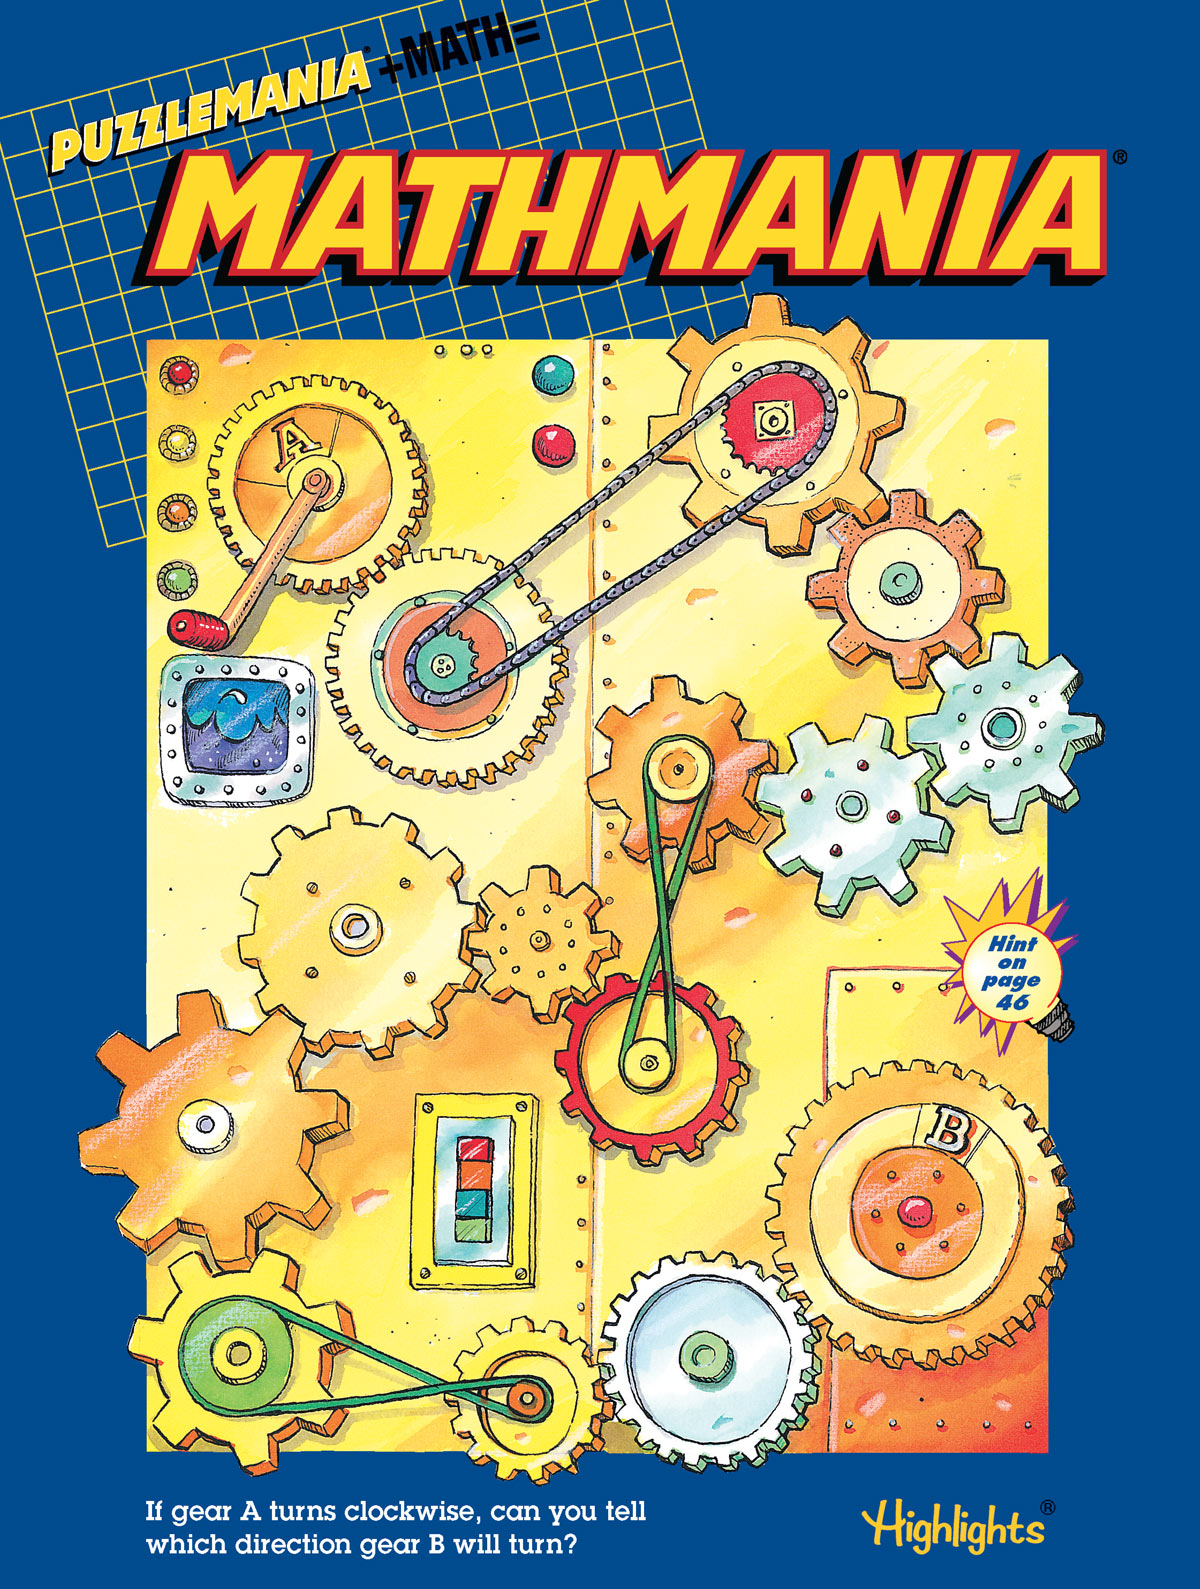 Kids Maths Book Cover : Math puzzles for kids books mathmania